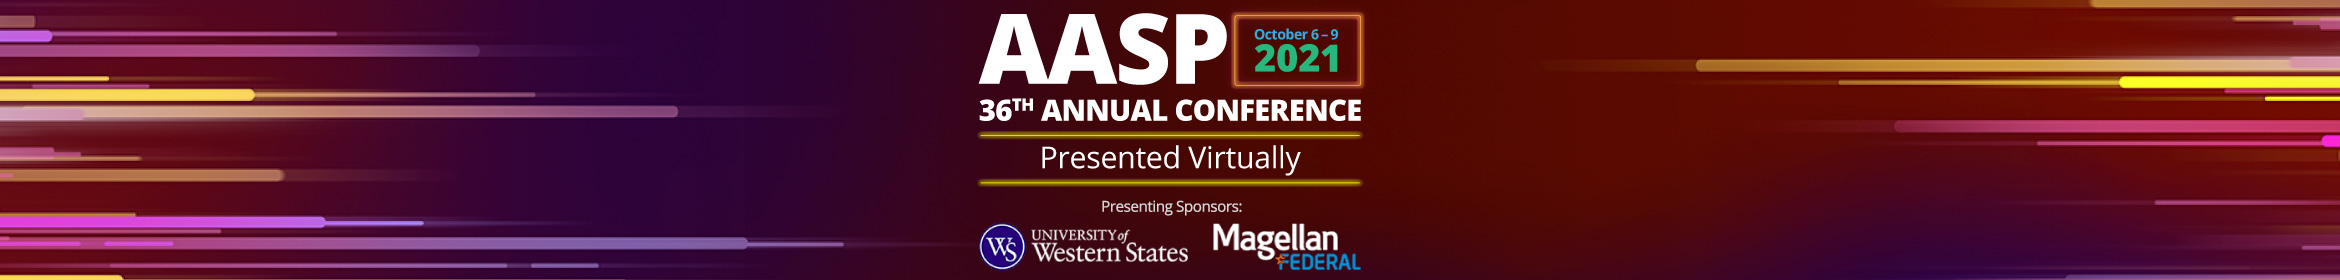 AASP 36th Annual Conference Main banner